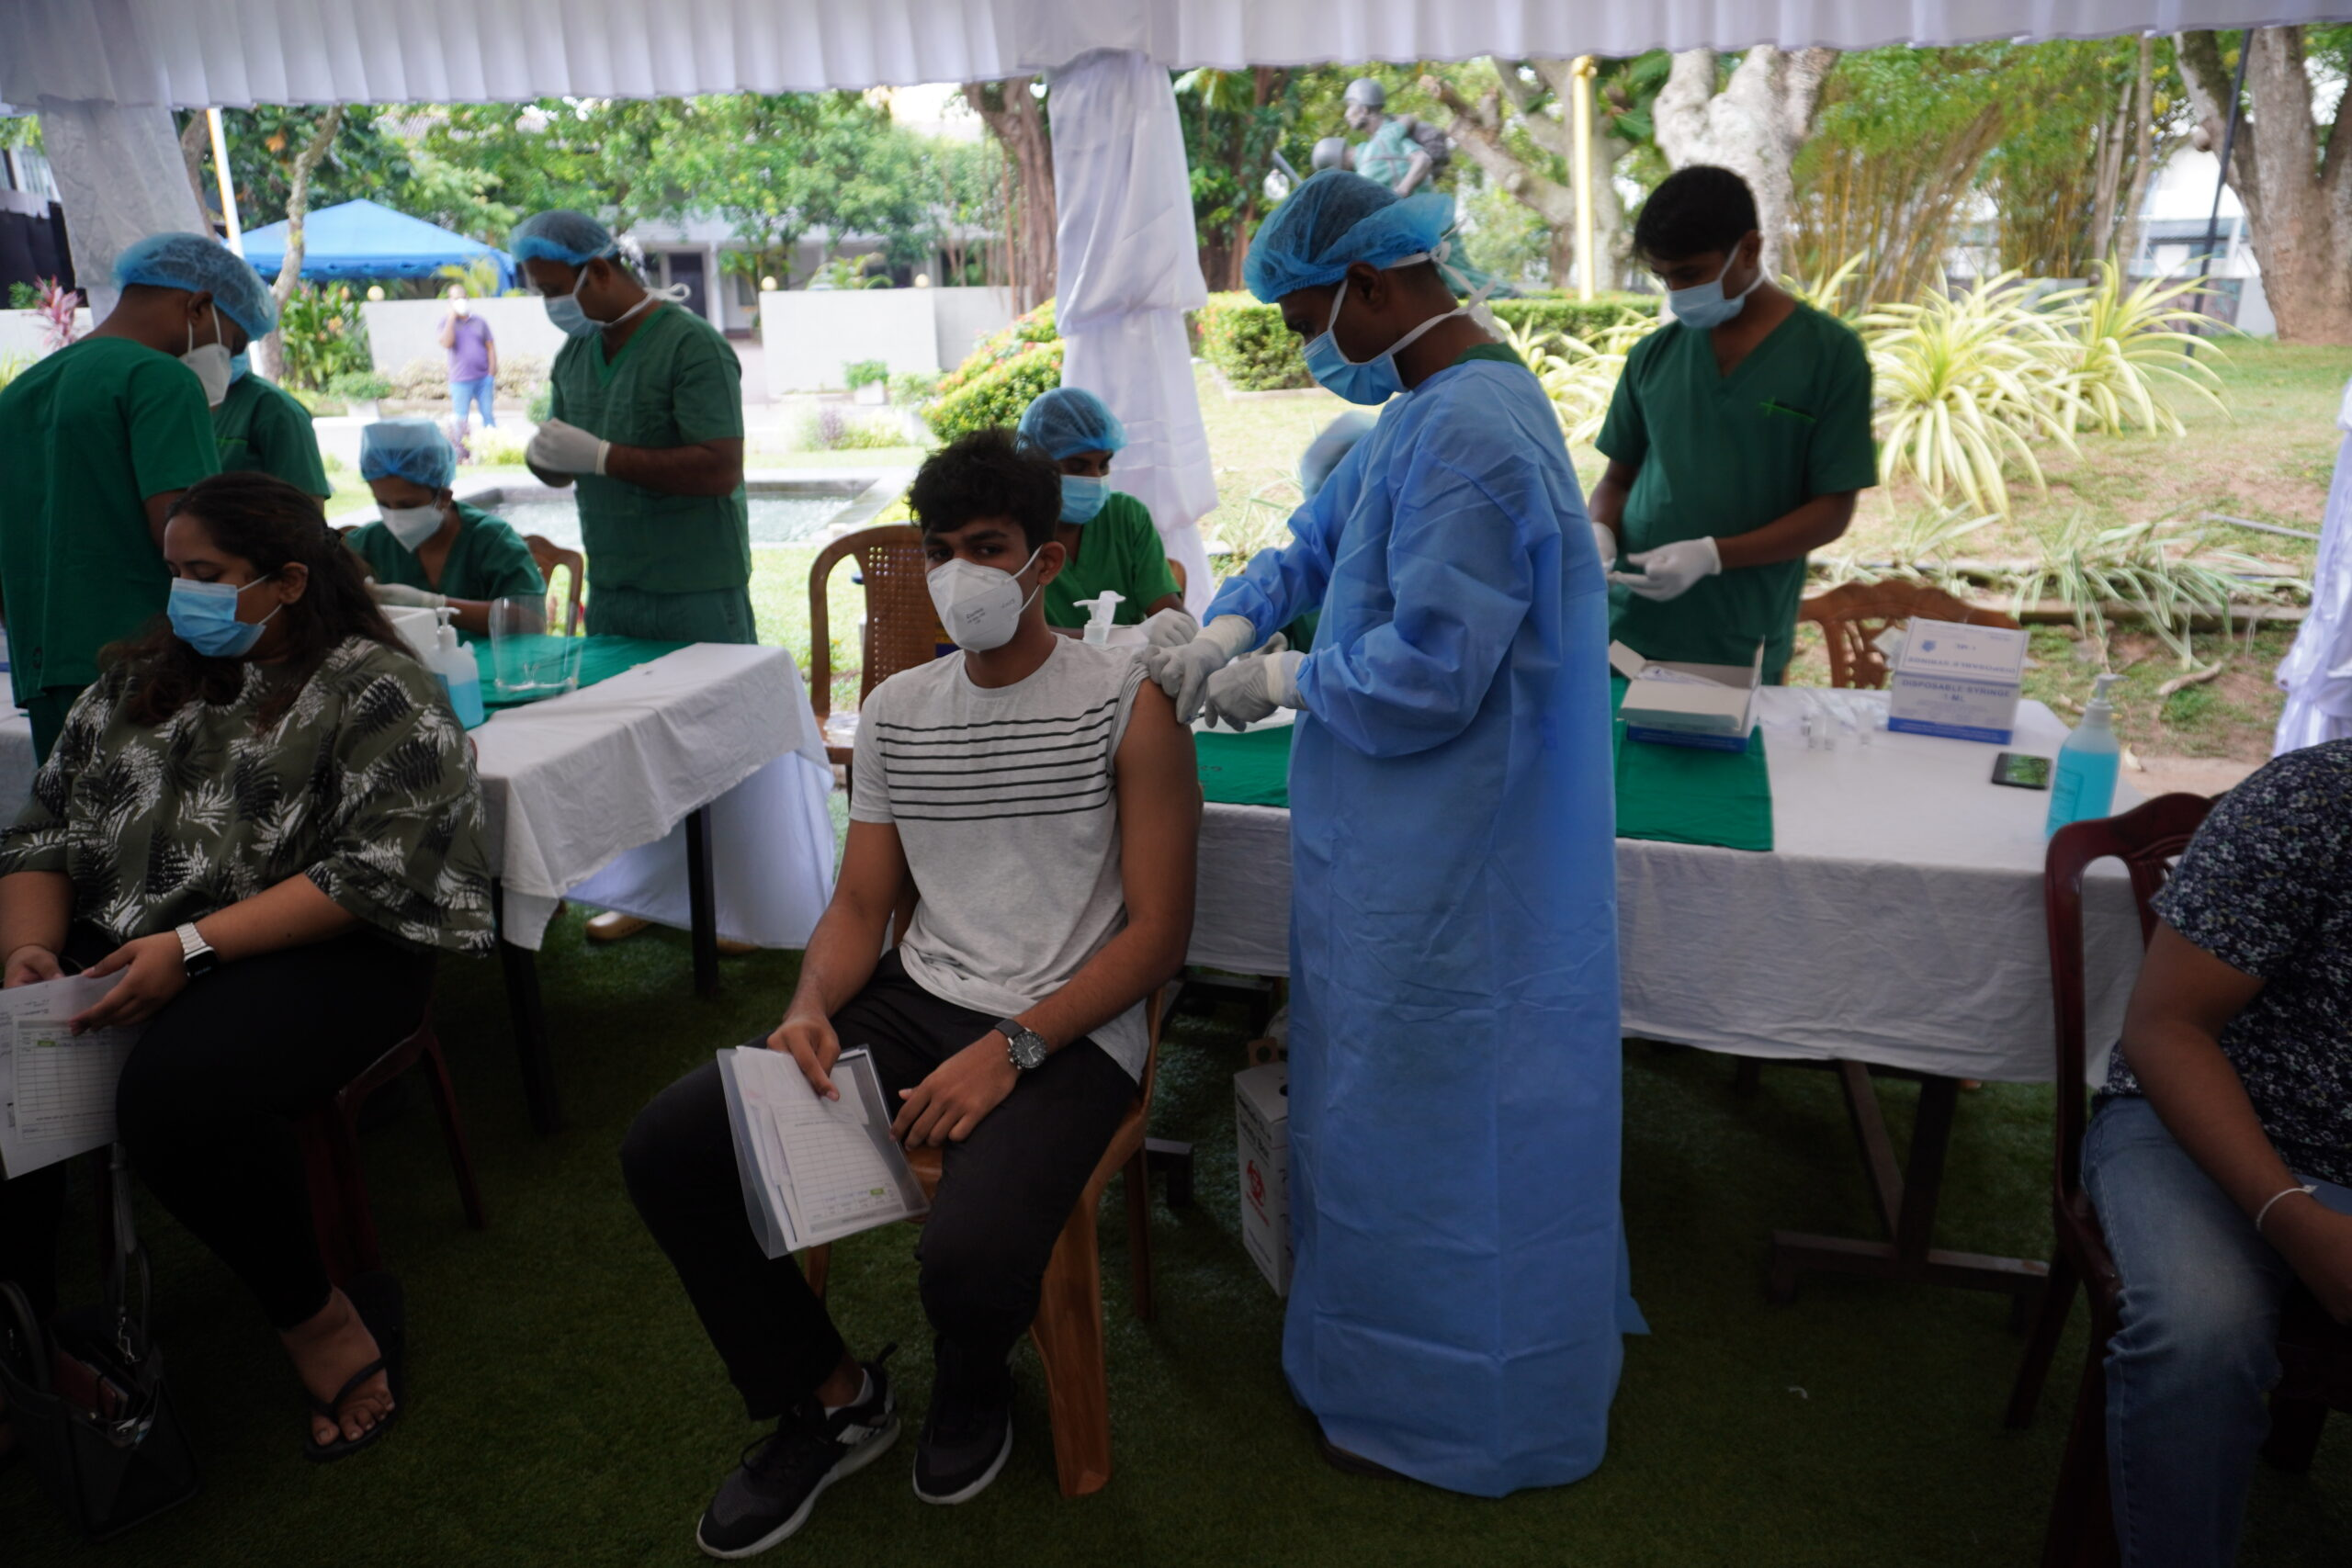 Age below 30 to receive first dose of COVID vaccine in Sri Lanka Soon